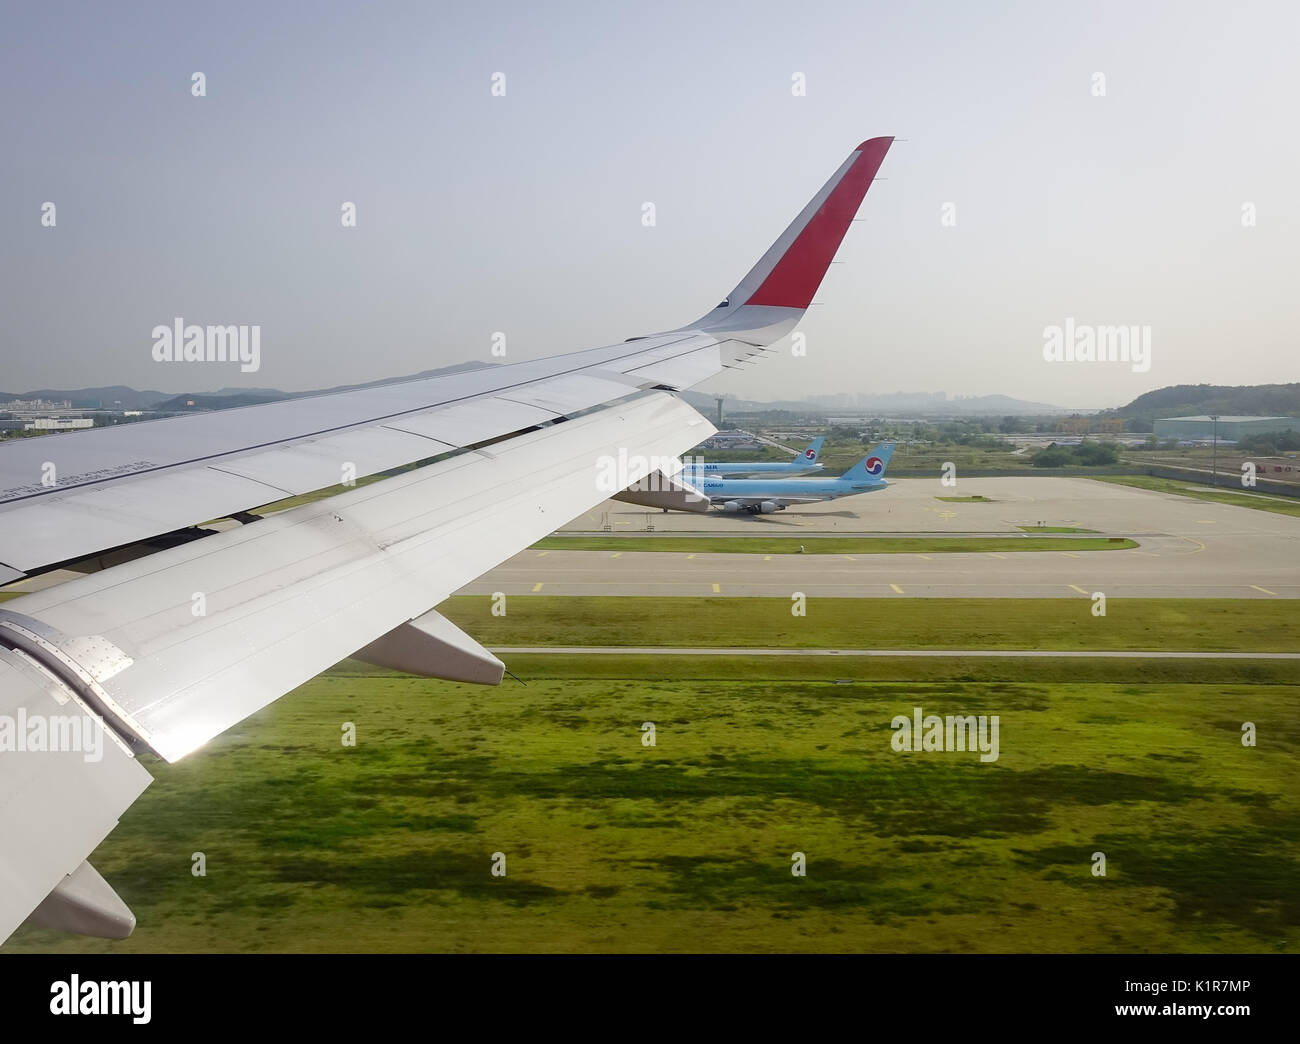 Wing Of Airplane With The Runway Background View From Window Seat